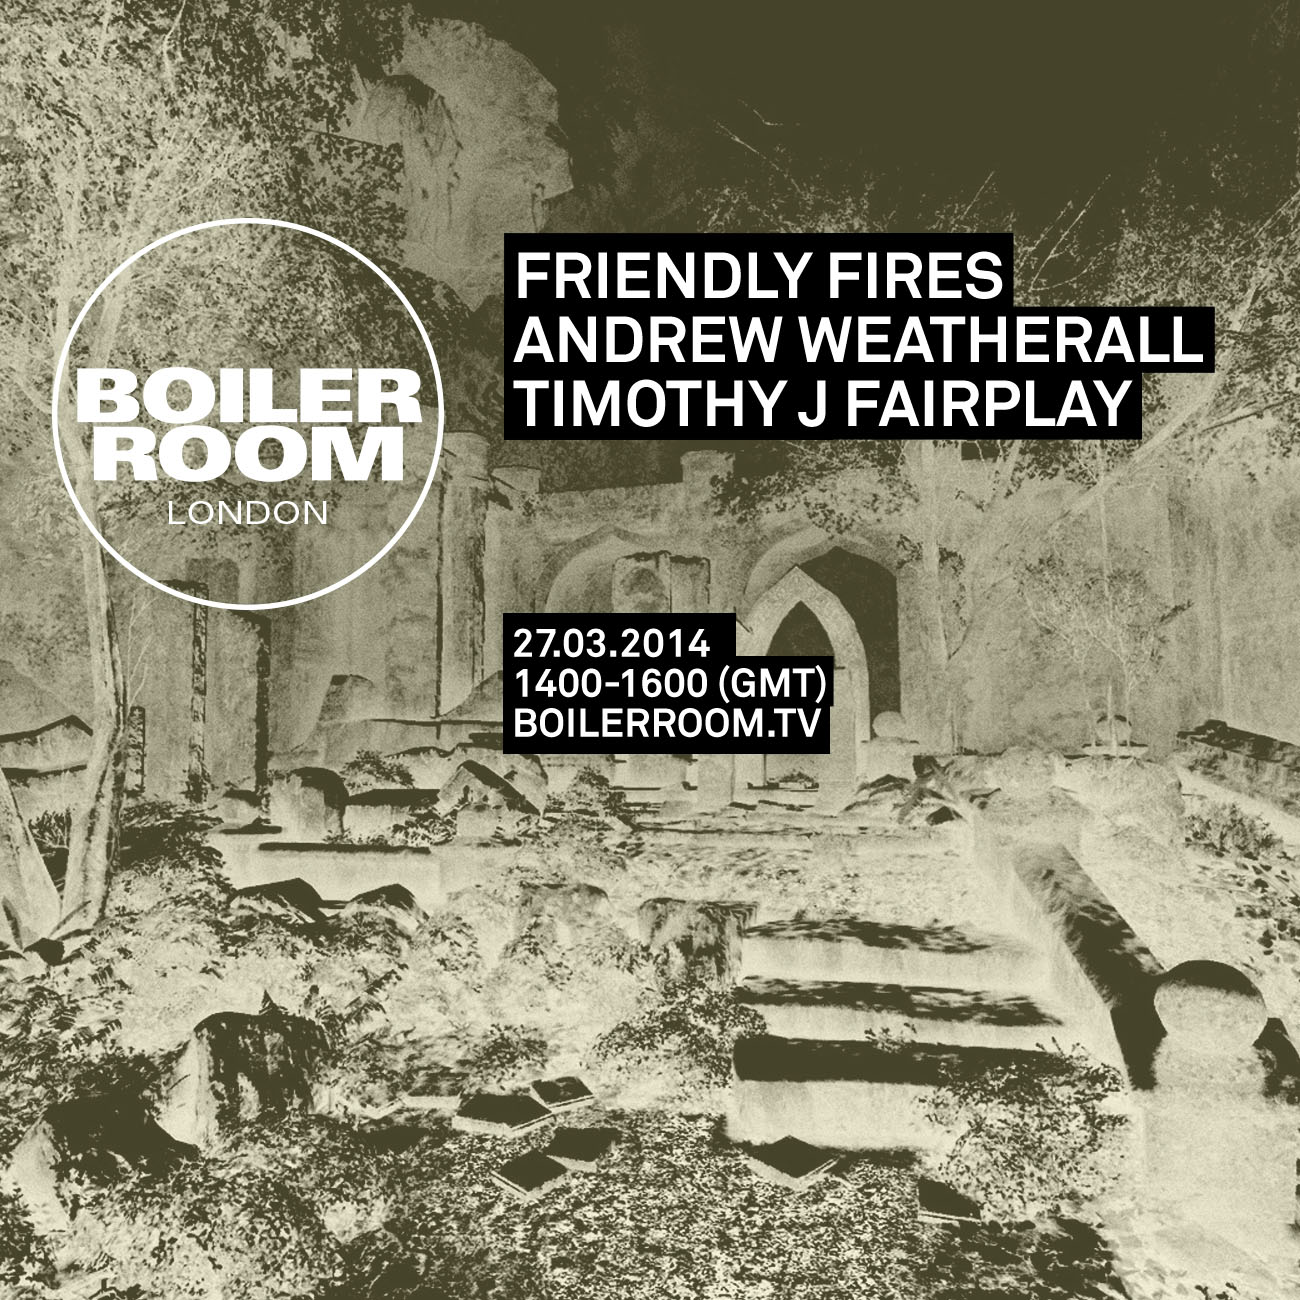 London: Friendly Fires, Andrew Weatherall, Timothy J Fairplay Flyer Image